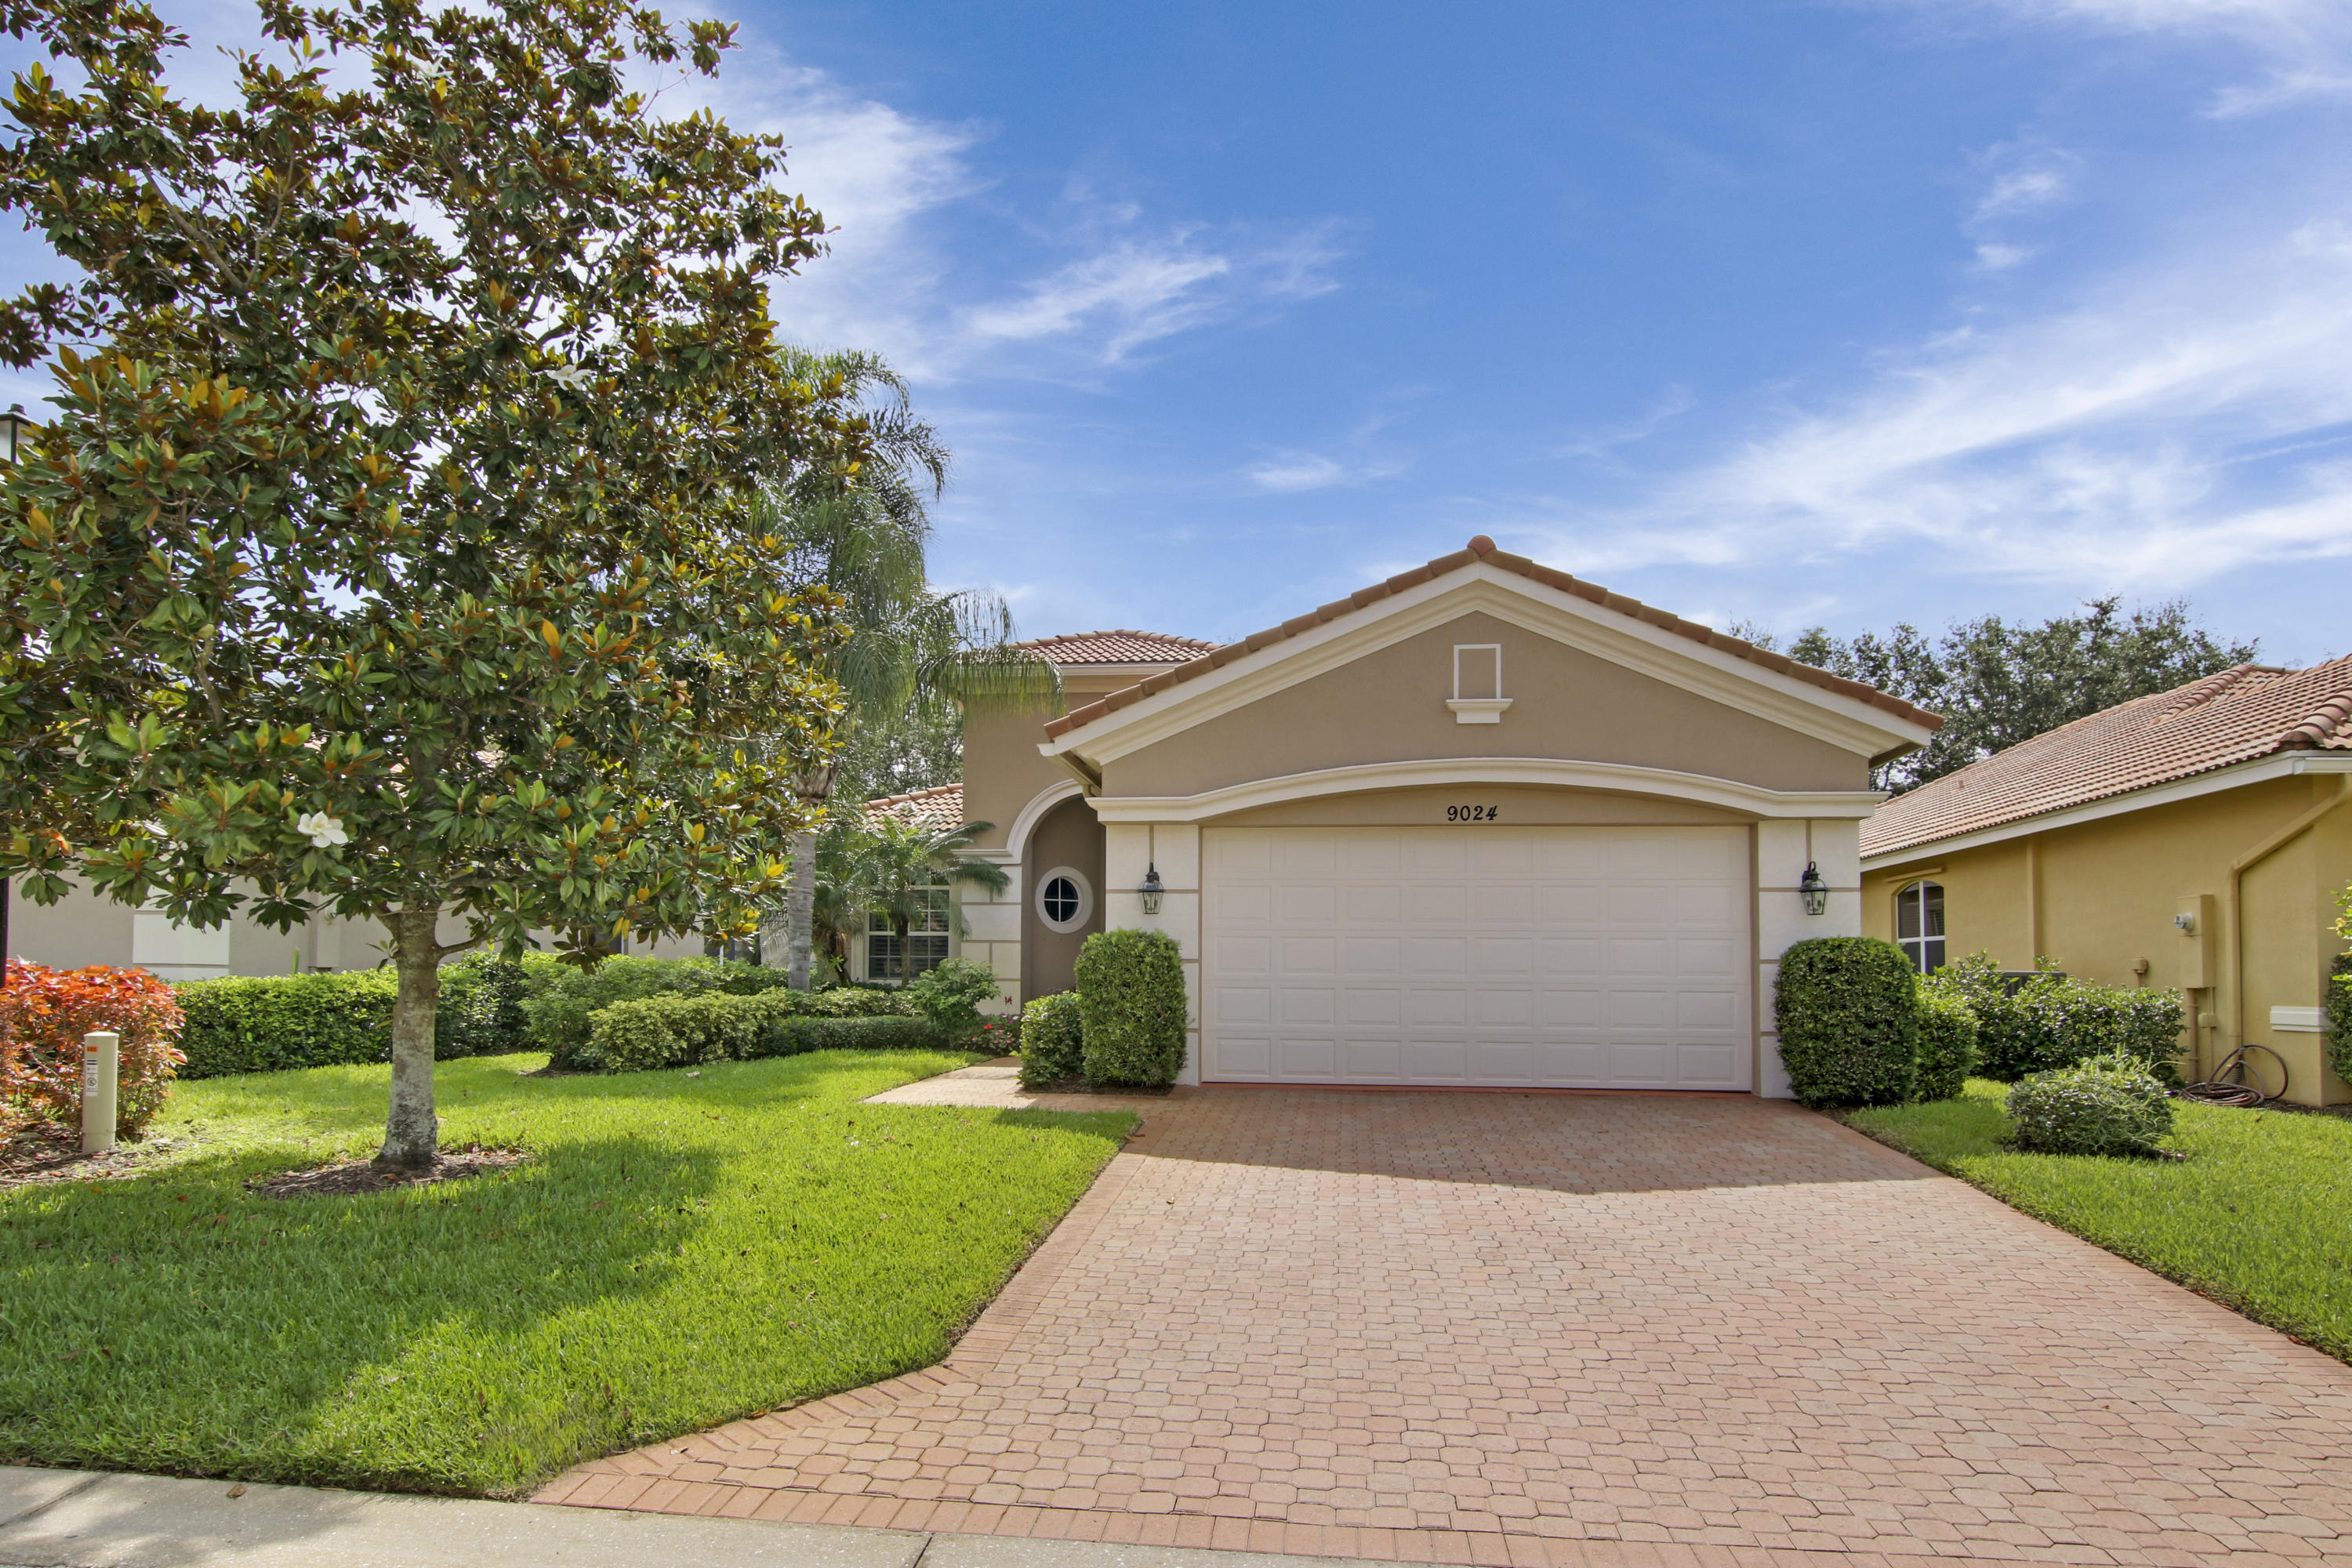 9024 Short Chip Circle, Port Saint Lucie FL 34986